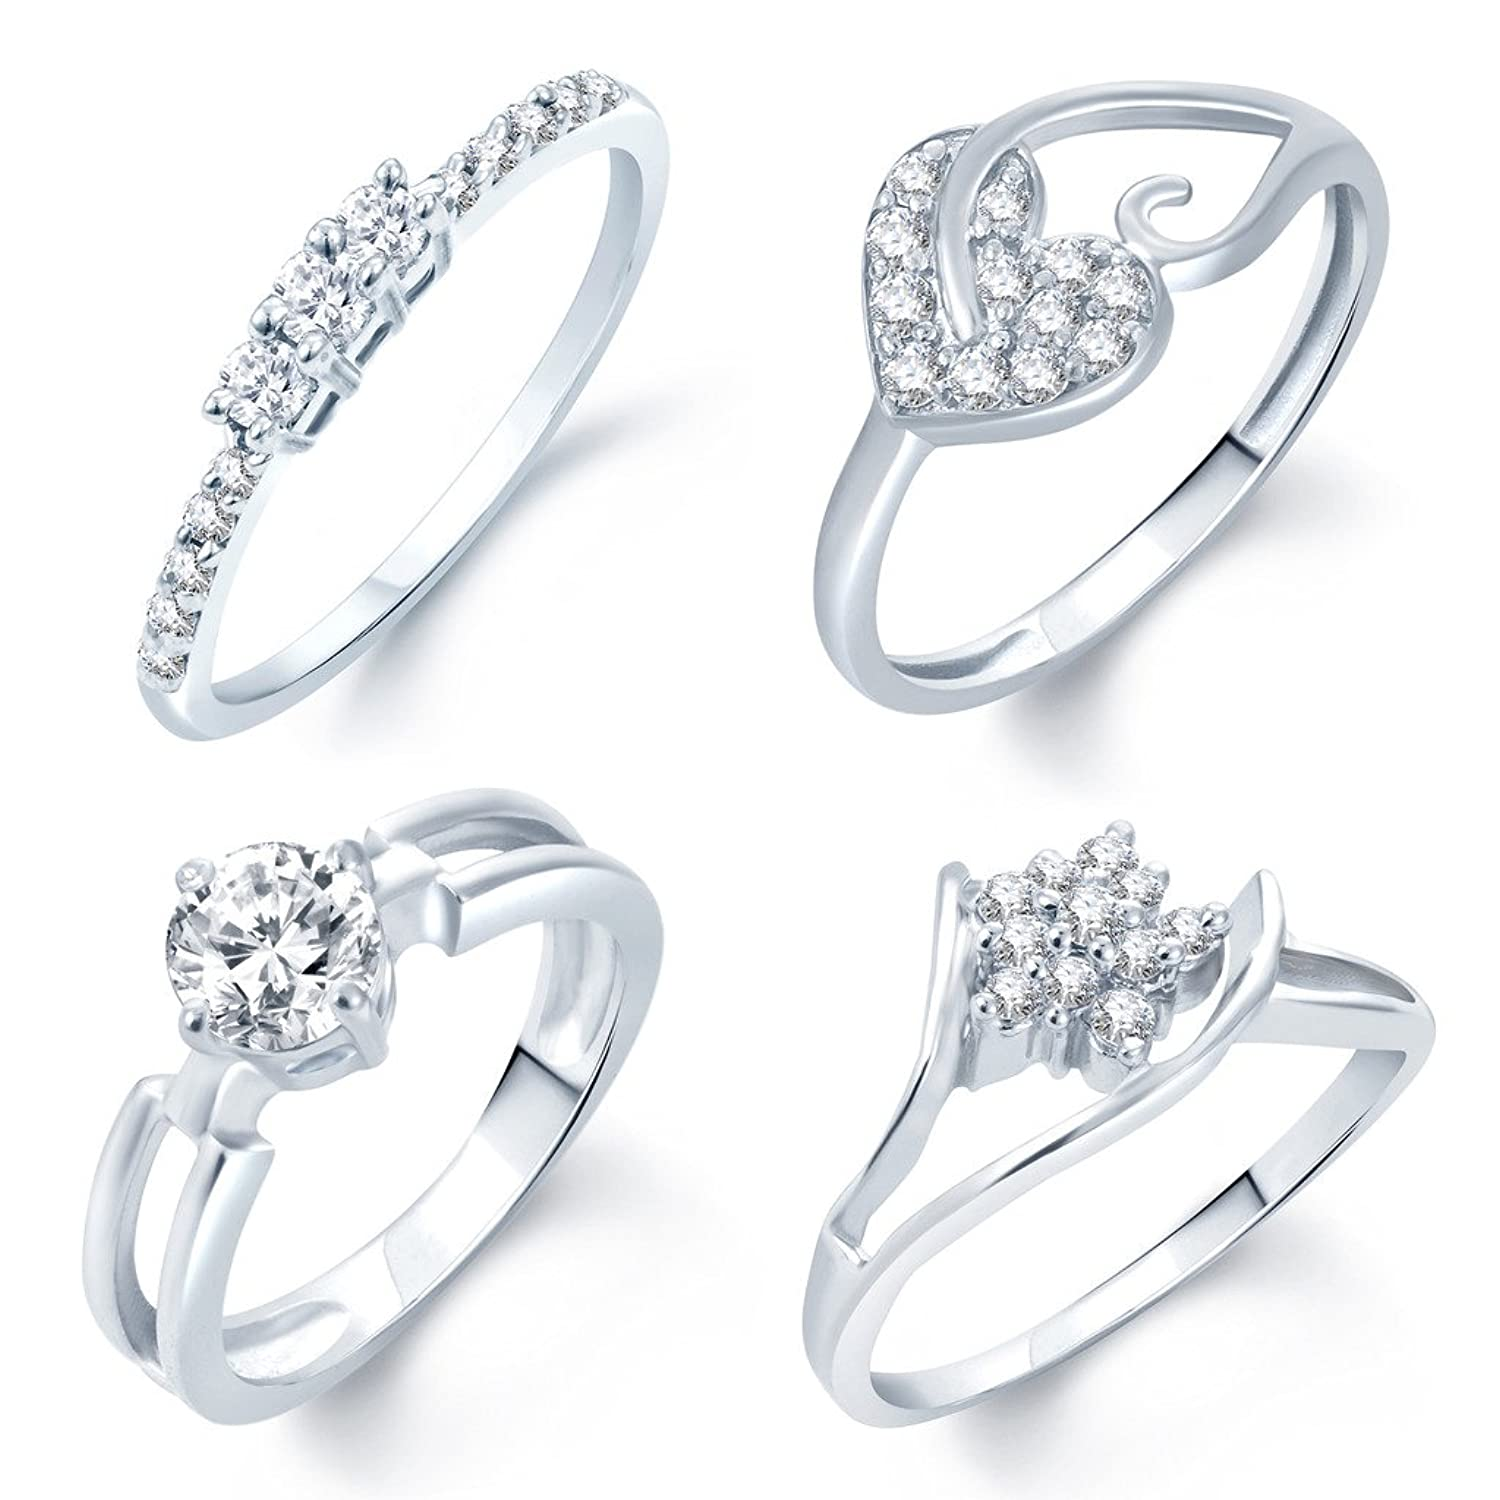 Buy Sukkhi Incredible Rhodium Plated Set Of 4 CZ Ring Combo For ...